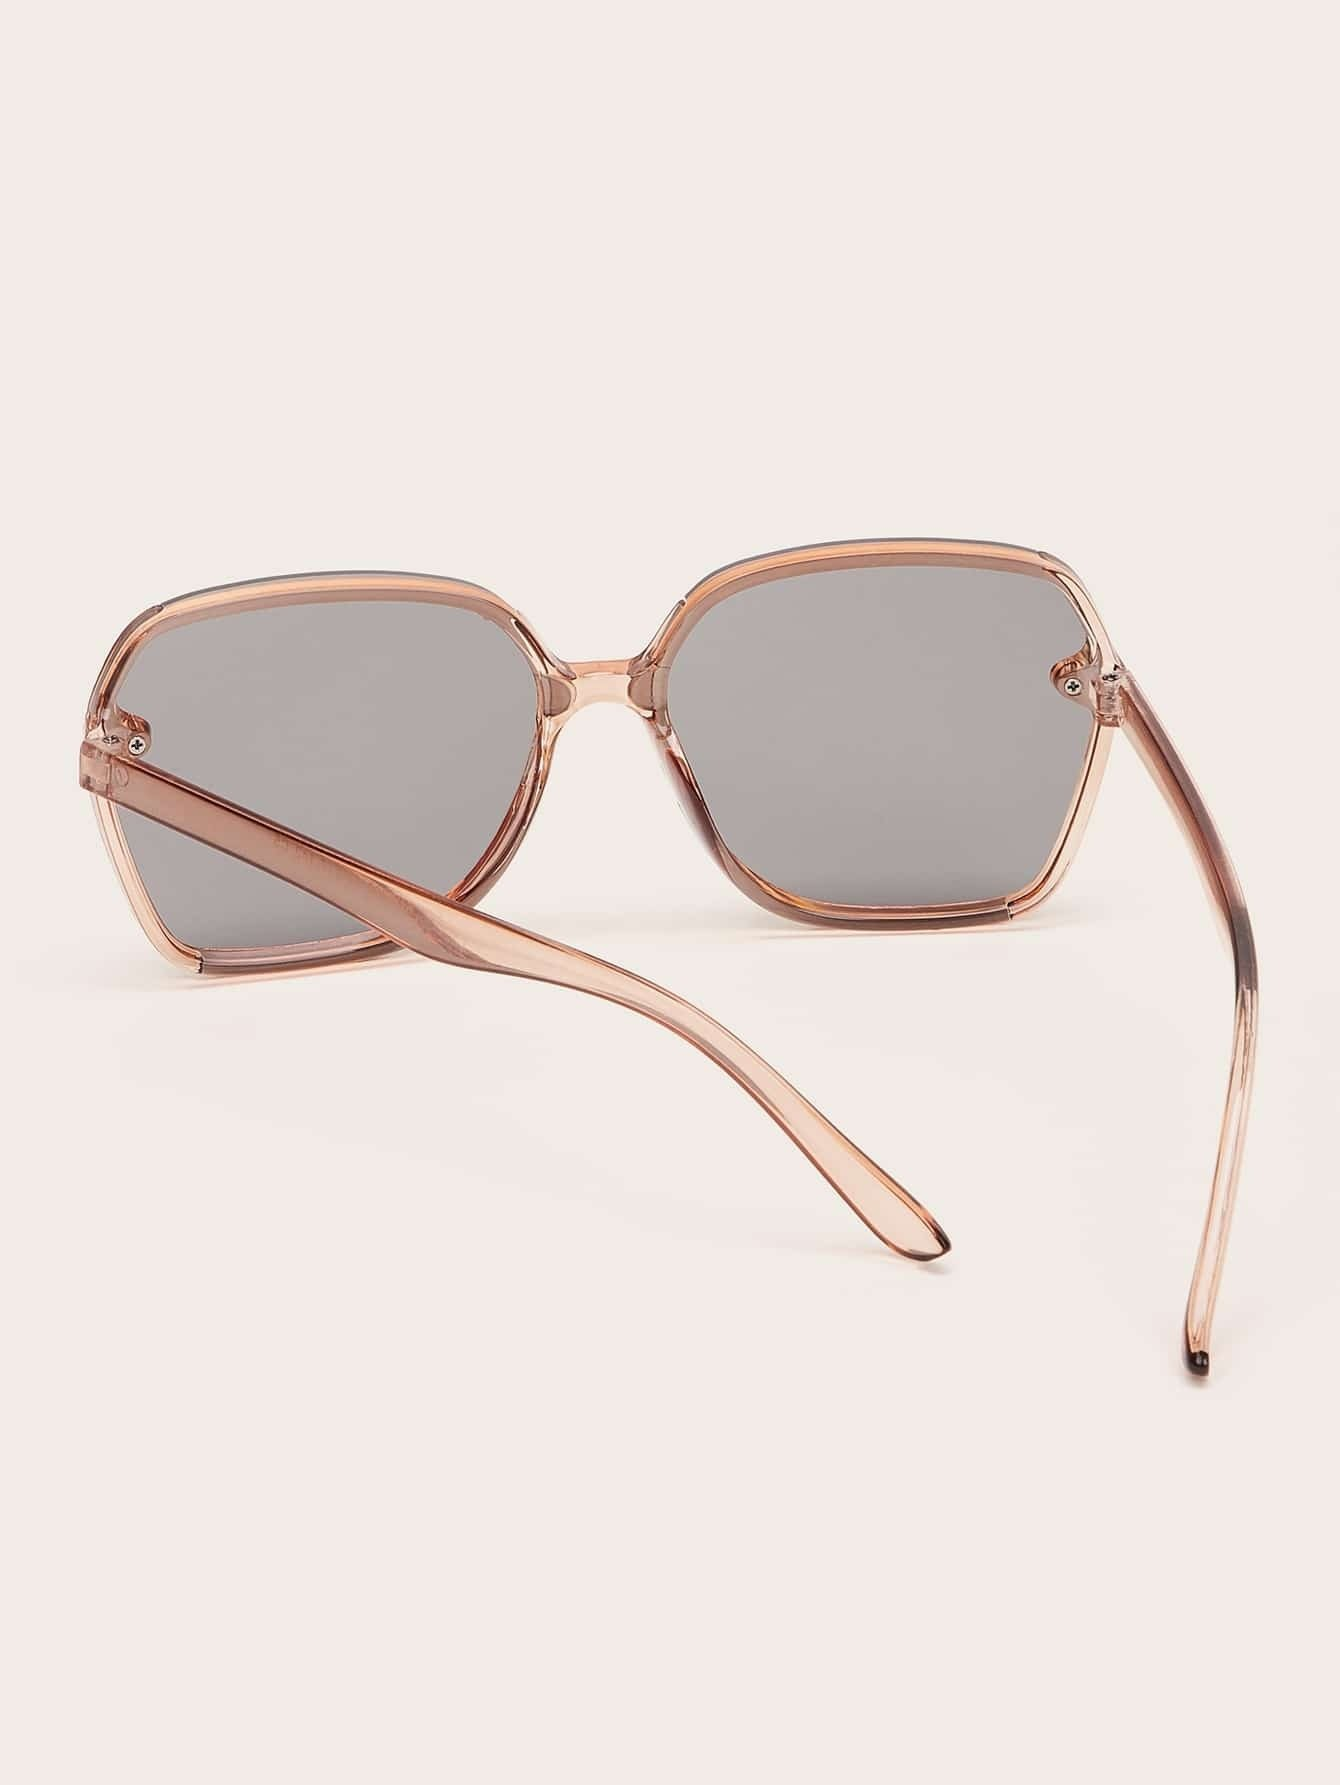 Two Tone Frame Flat Lens Sunglasses With Case